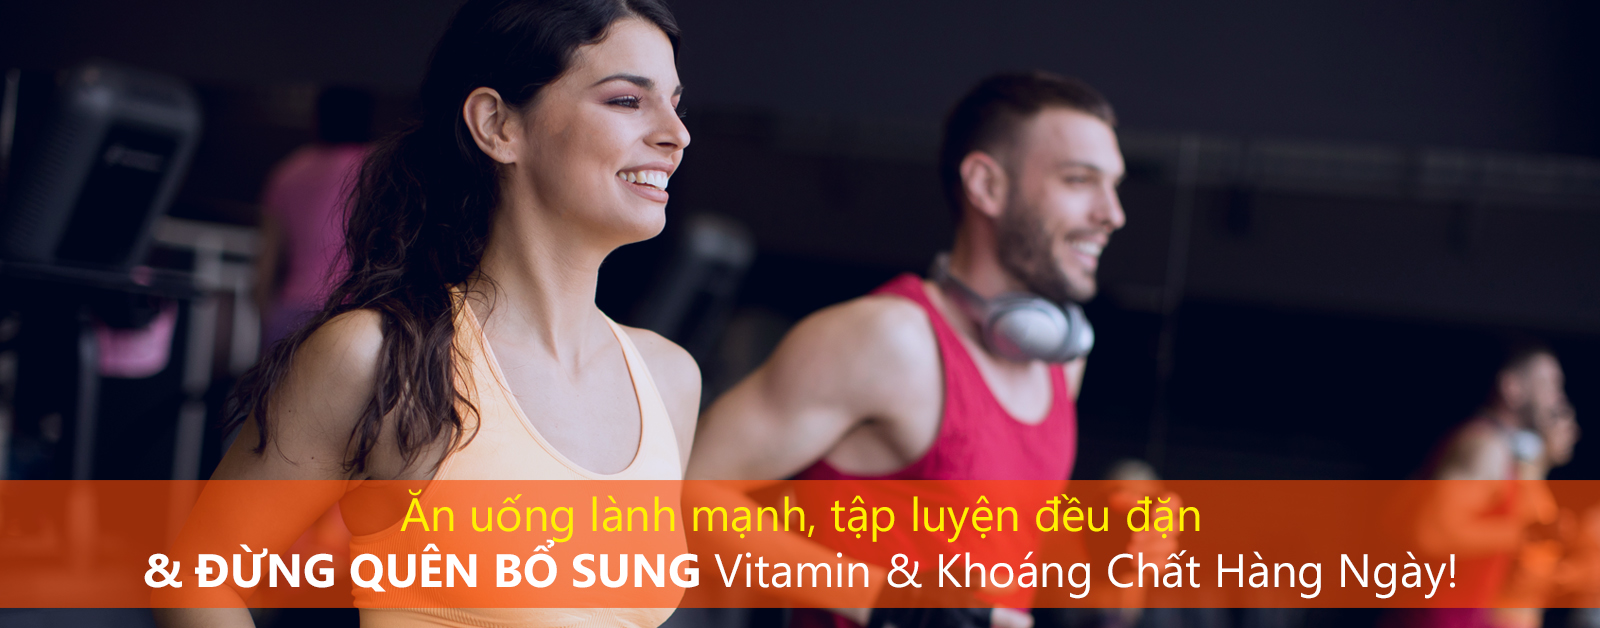 Vitamin Khoang Chat Smart Nutri